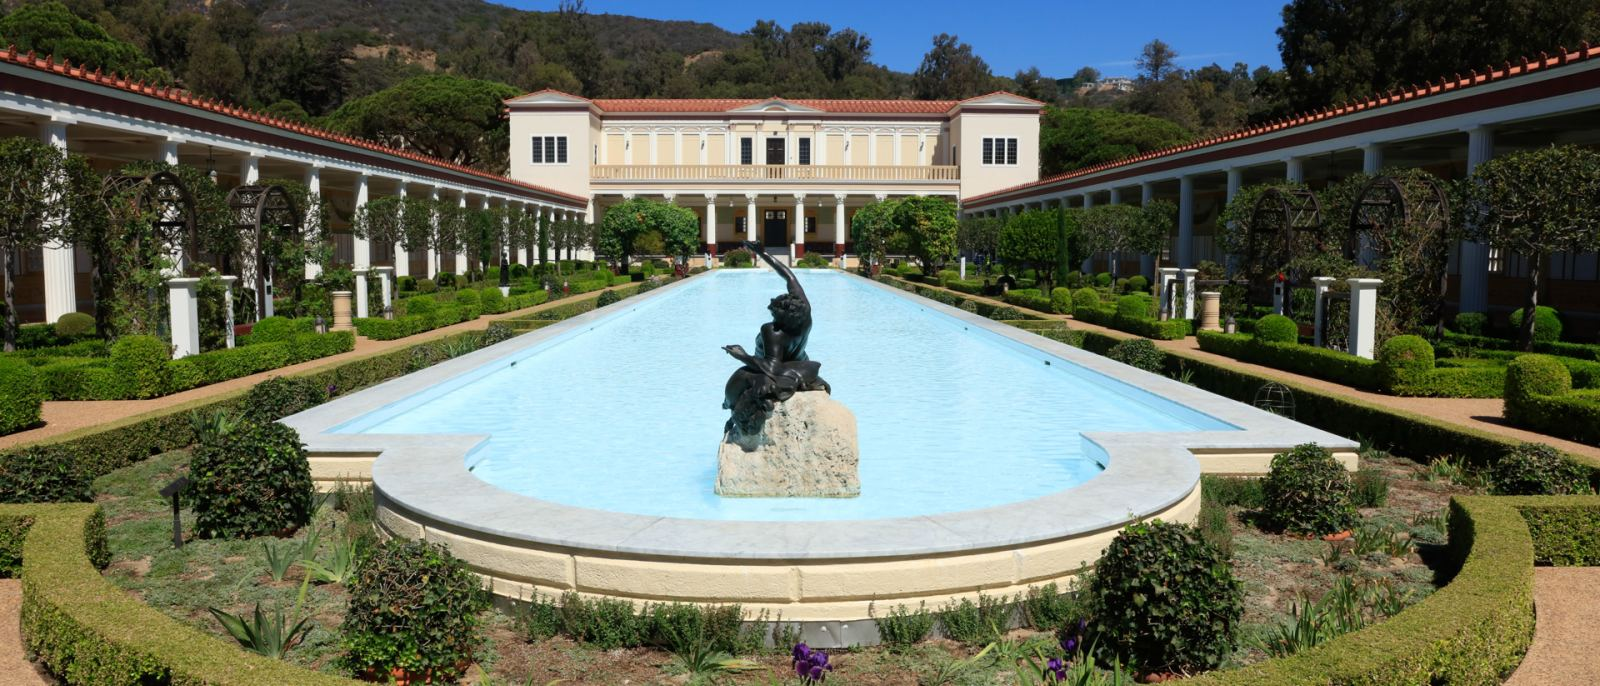 Outer Peristyle Garden at the Getty Villa